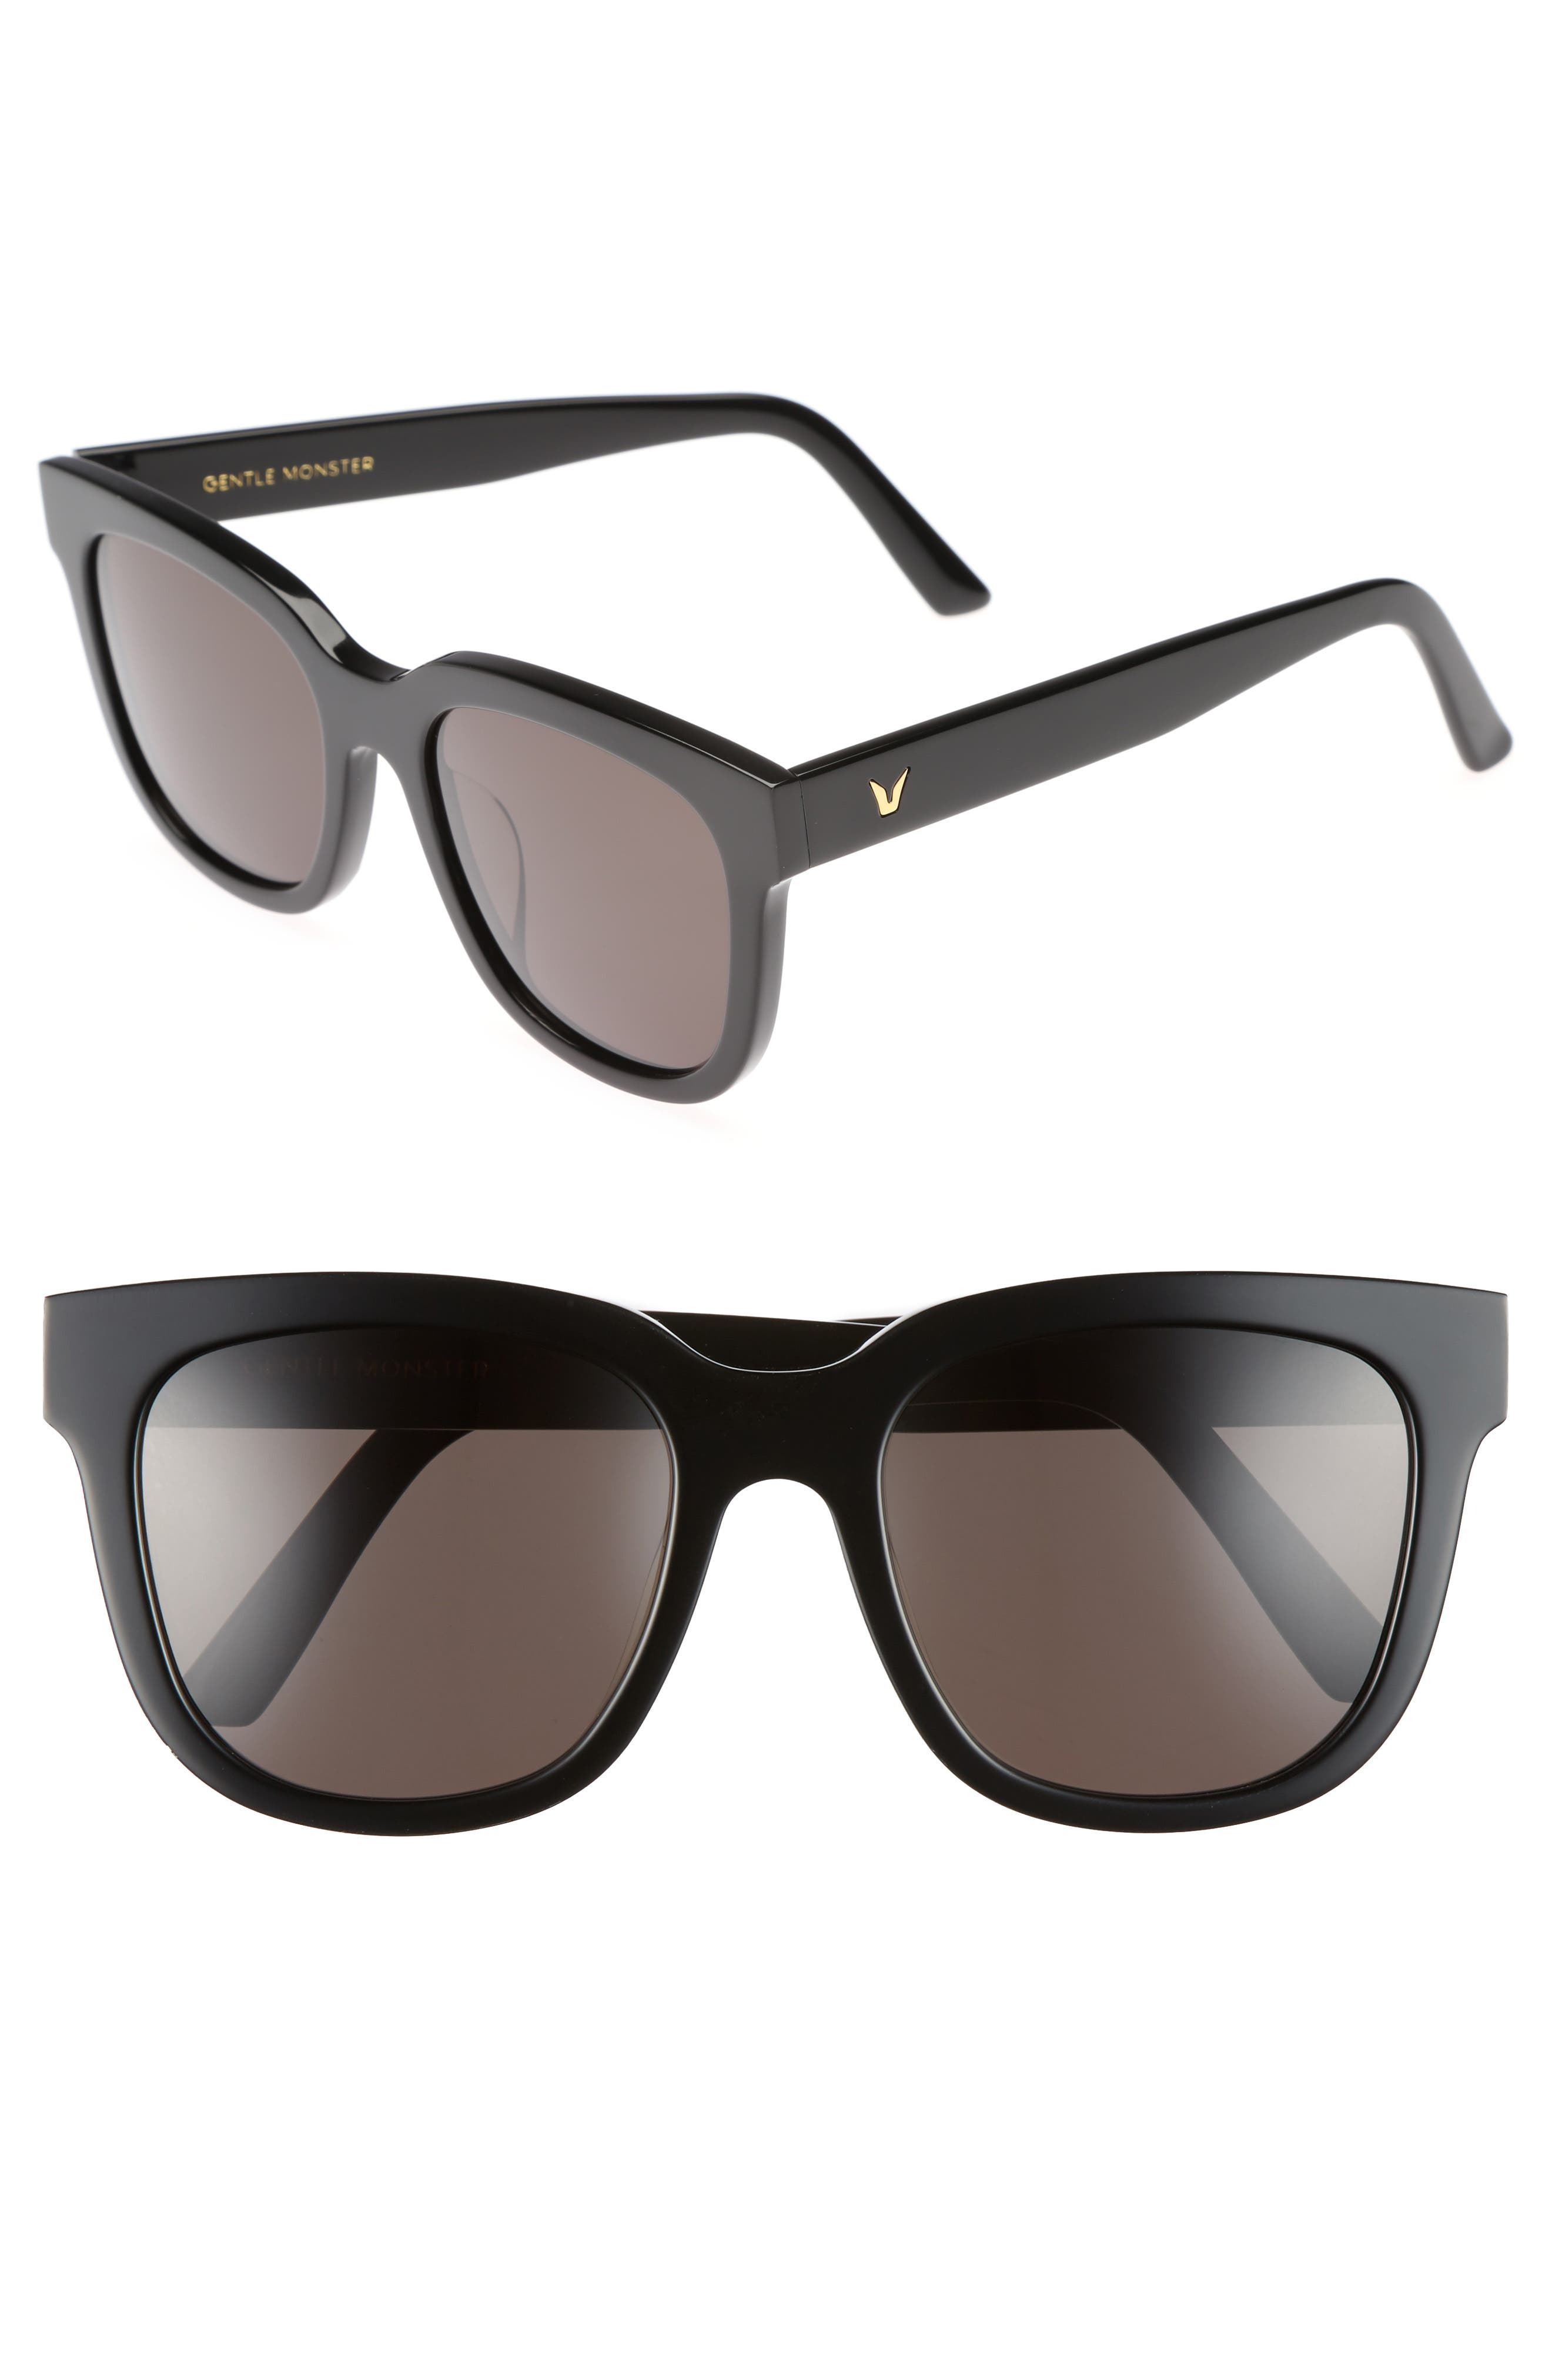 Salt 55mm Sunglasses,                             Main thumbnail 1, color,                             001